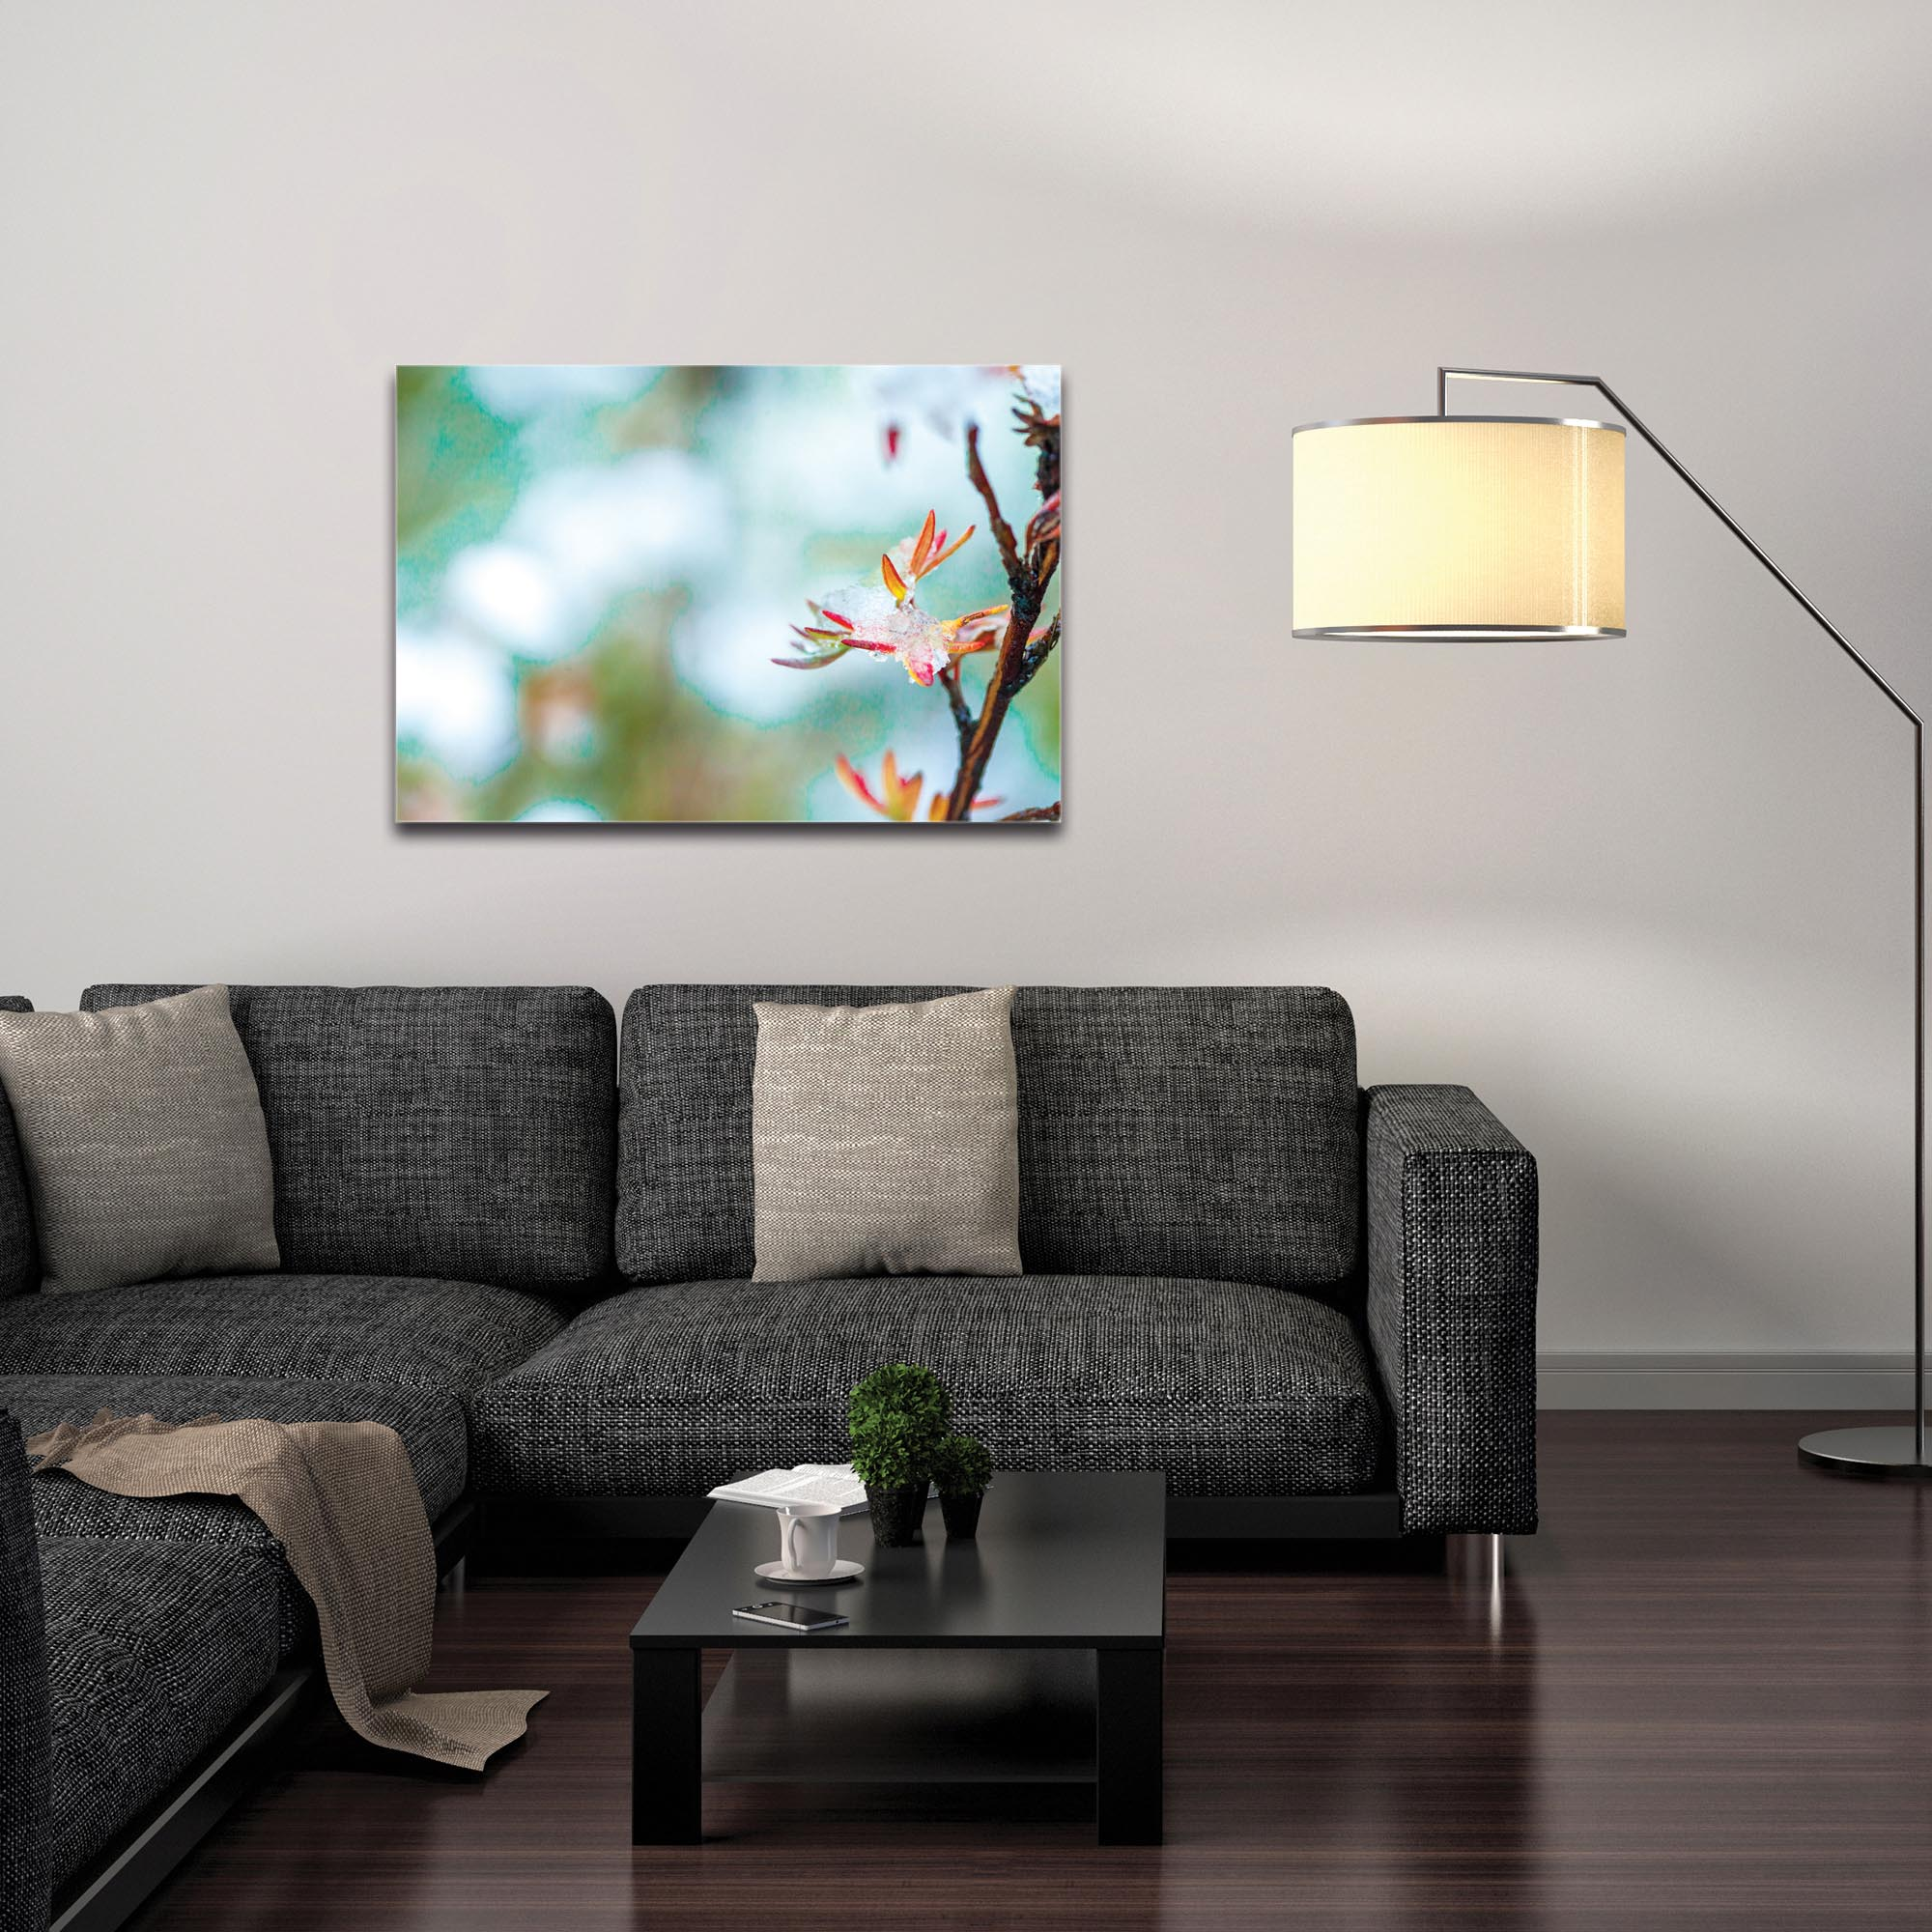 Nature Photography 'Icy Autumn v2' - Winter Blossom Art on Metal or Plexiglass - Image 3